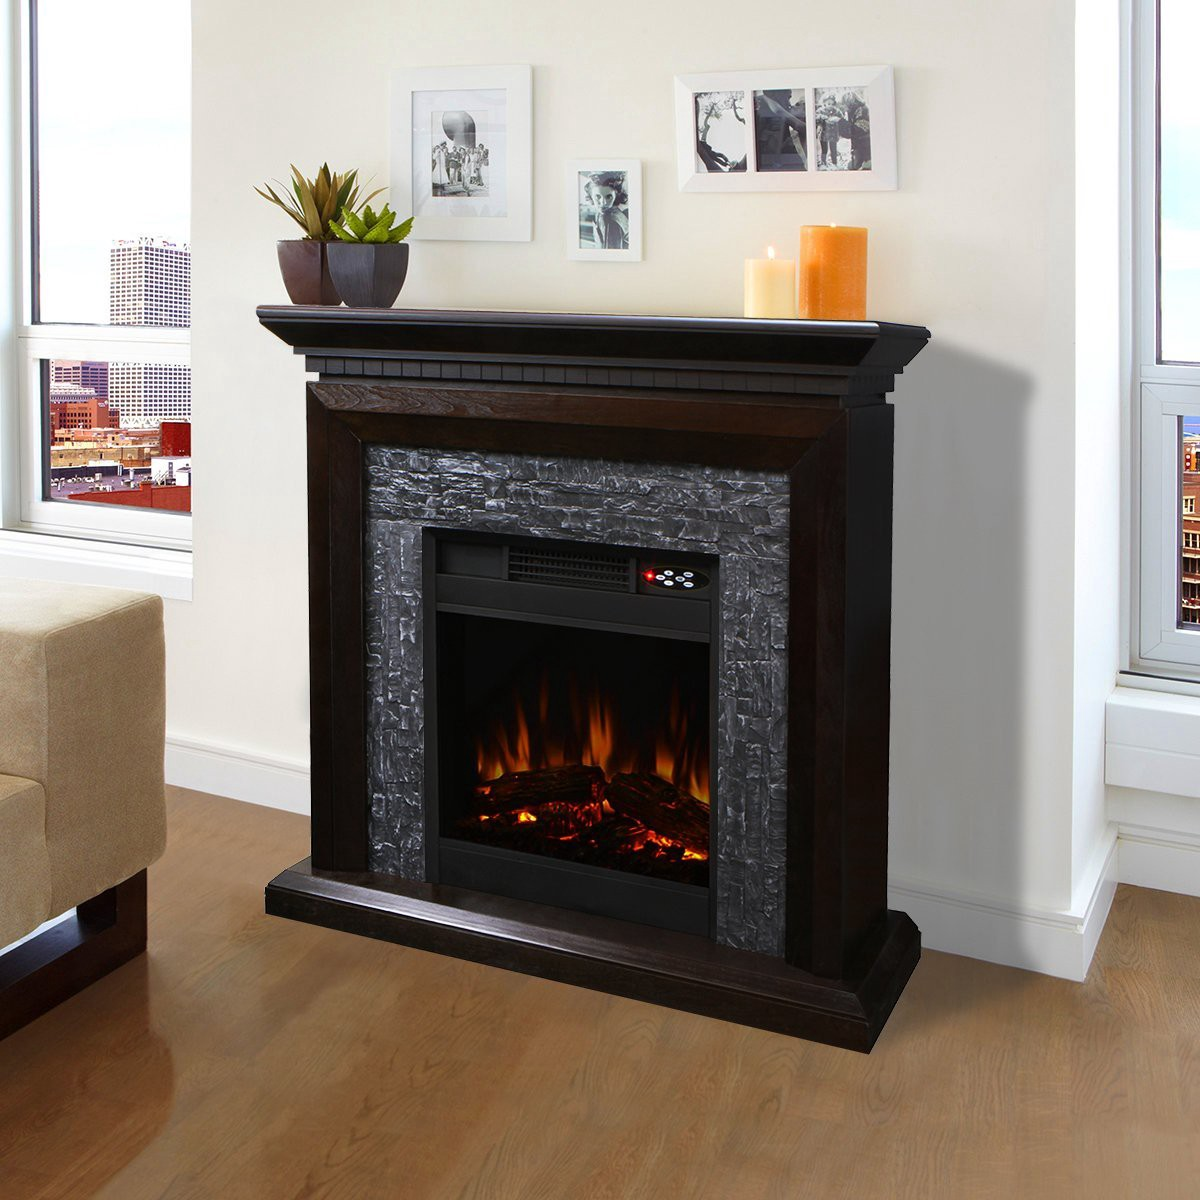 Eco friendly electric fireplace does it provide much heat for Eco friendly fireplace